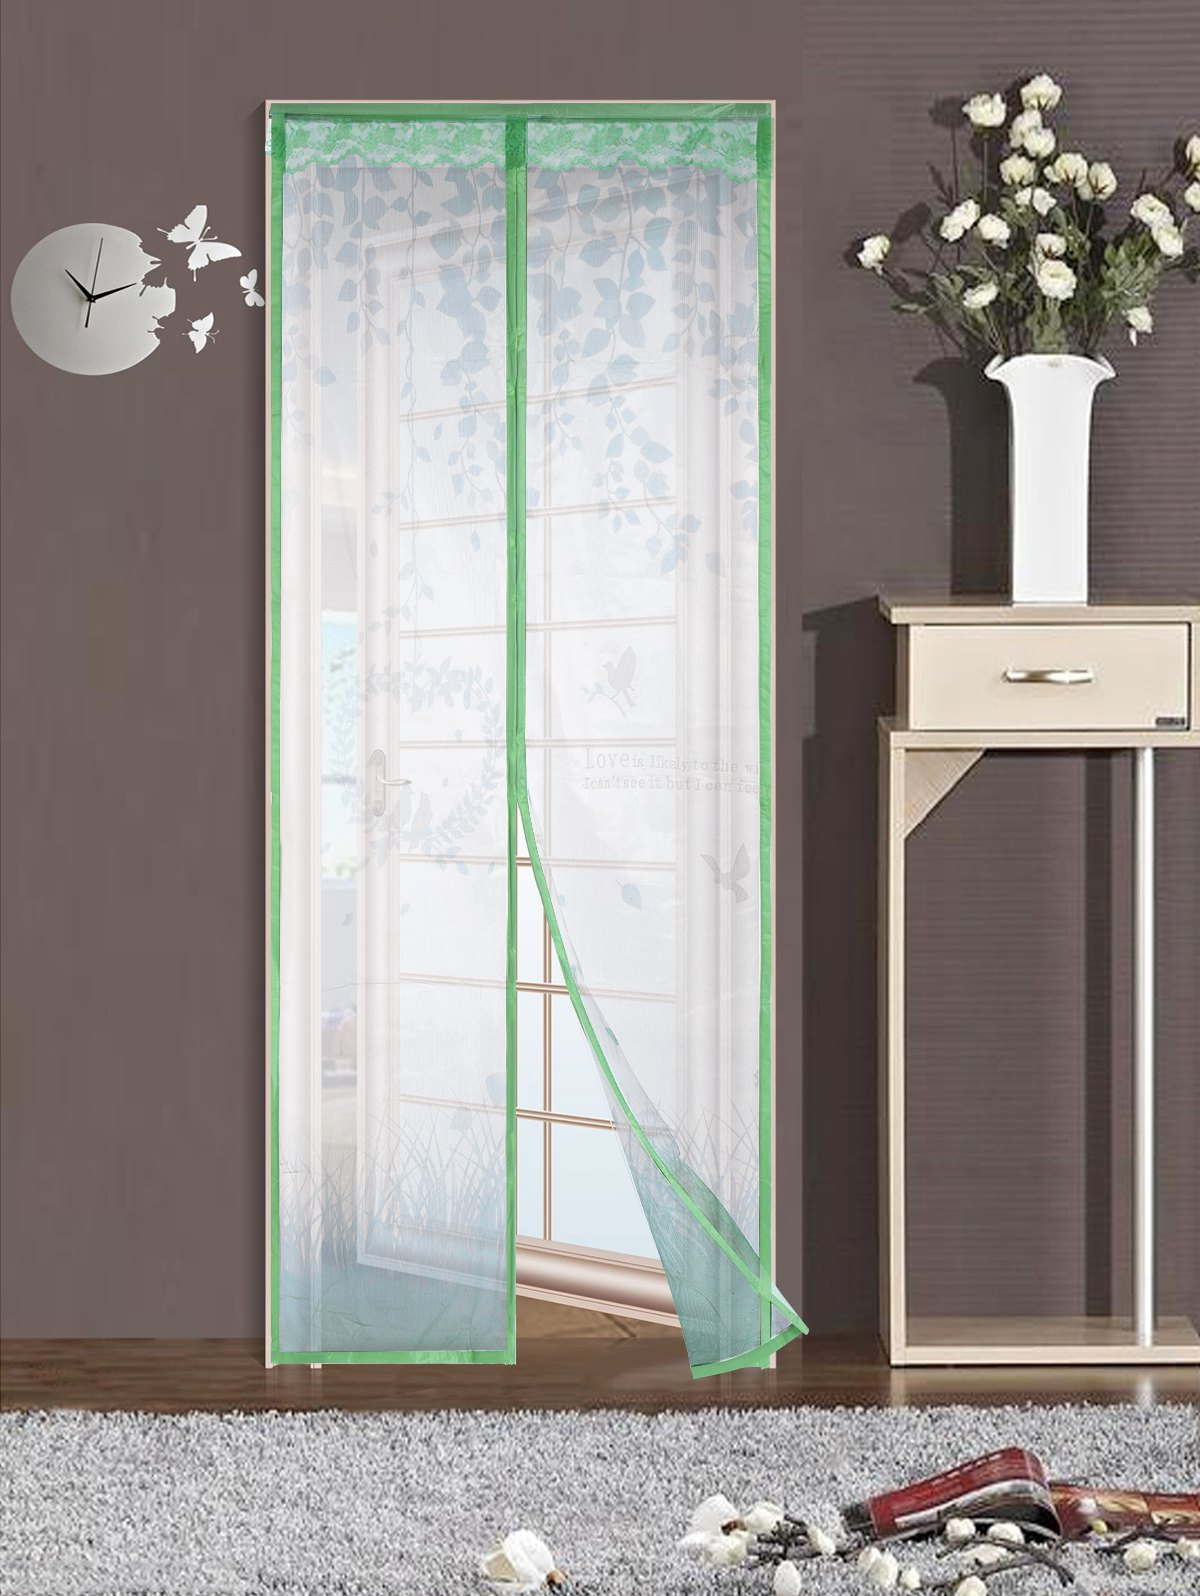 Self-Closing Anti Insects Mesh Door Screen Magnetic Curtain - GREEN 100*210CM